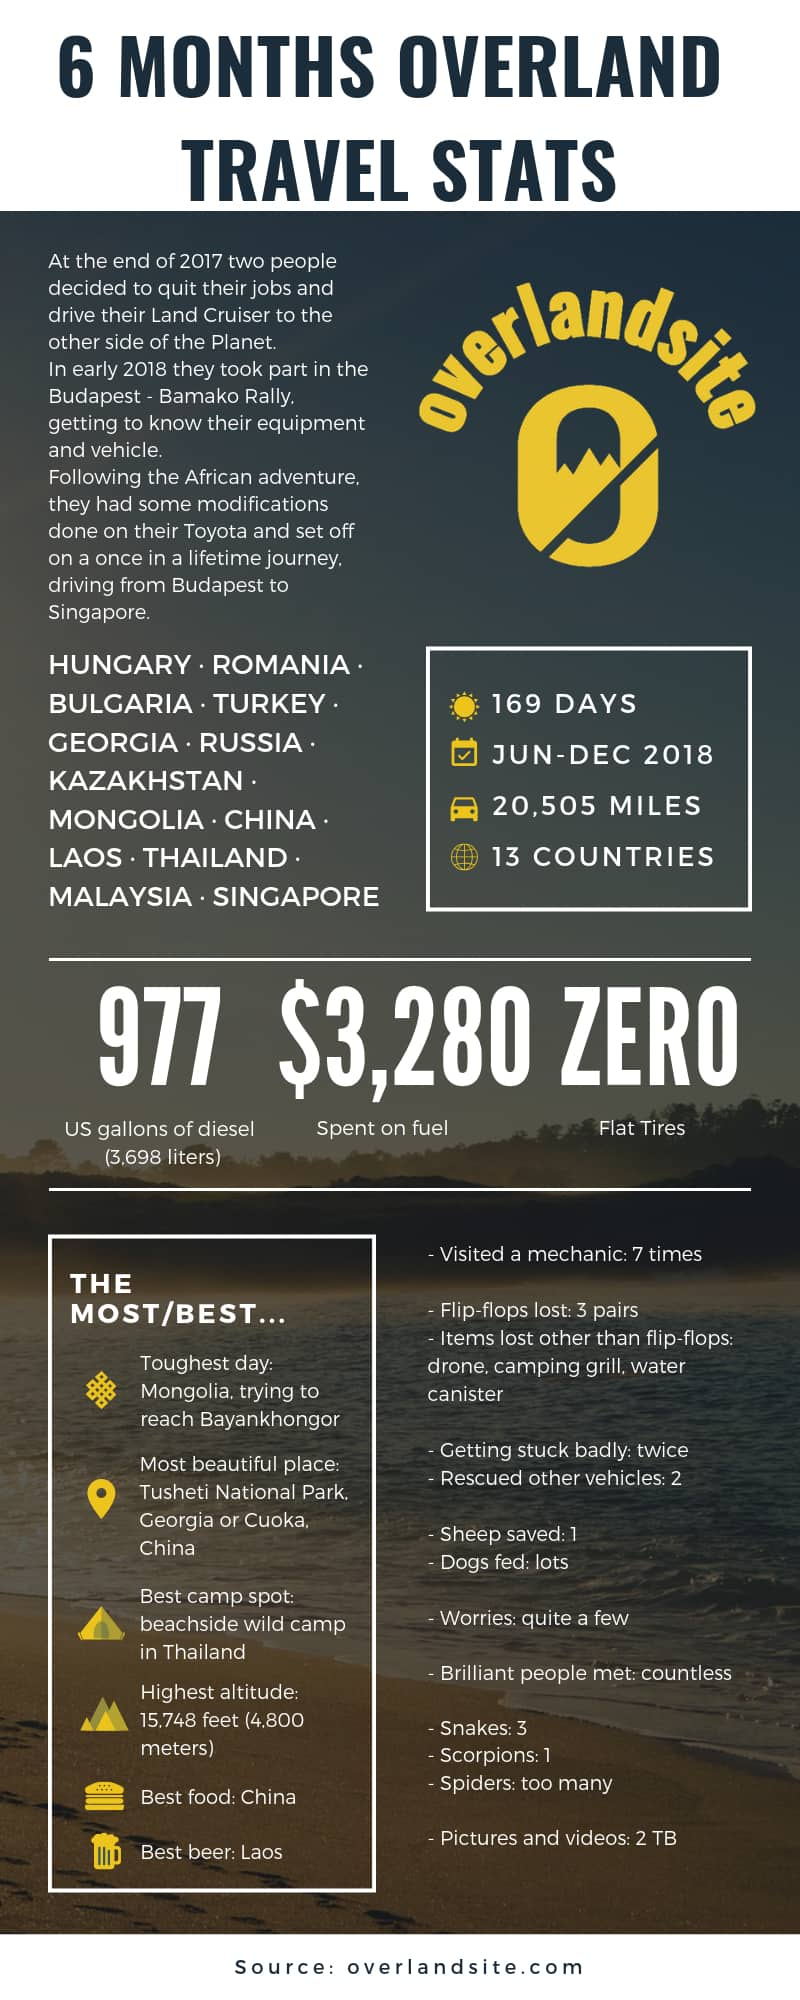 6 months overland journey infographic